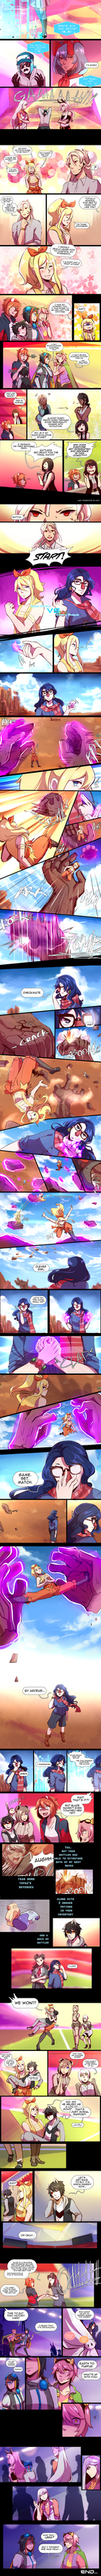 S.E (Ruby Nuzlocke) Save Log 12 Page 3 by bekkomi